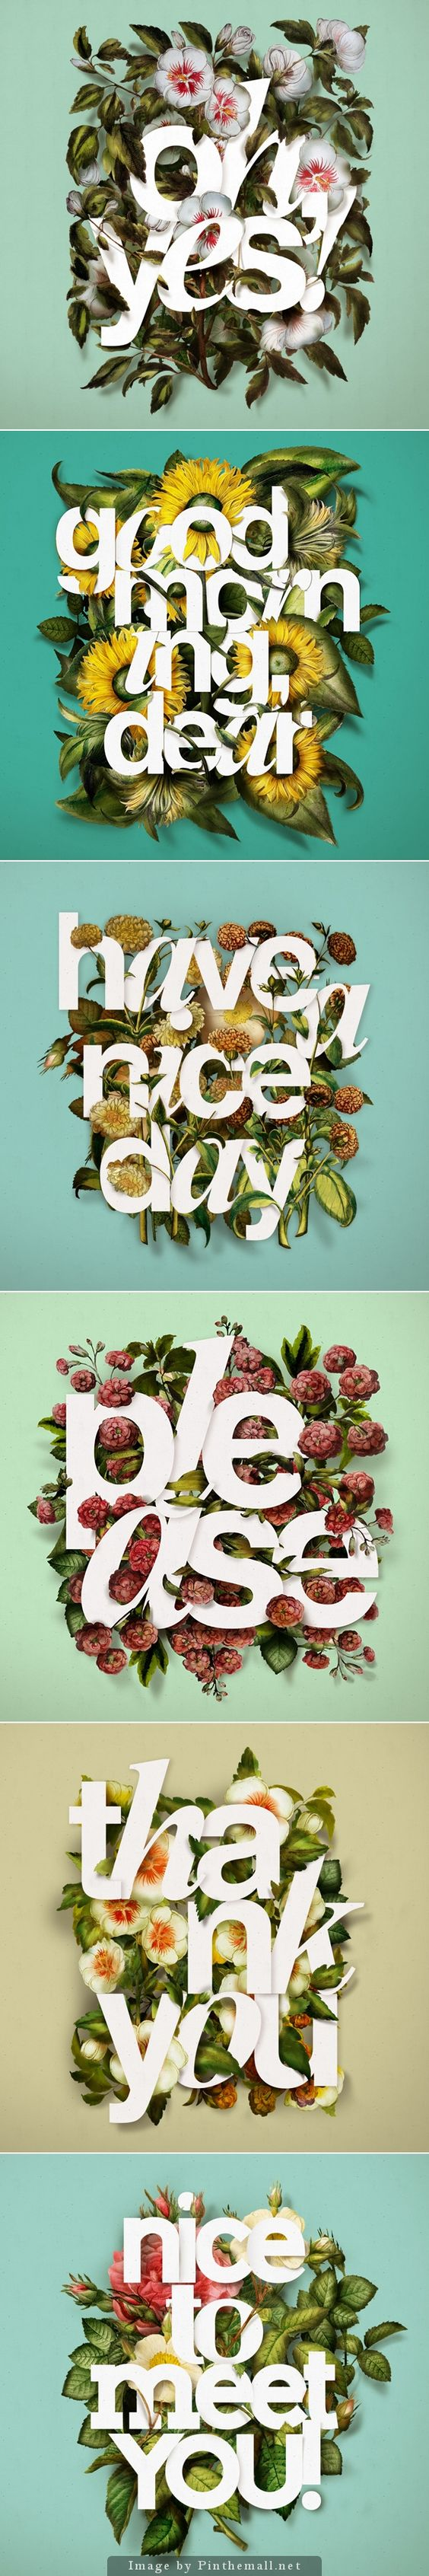 3D Typography   Saved From: Pinterest